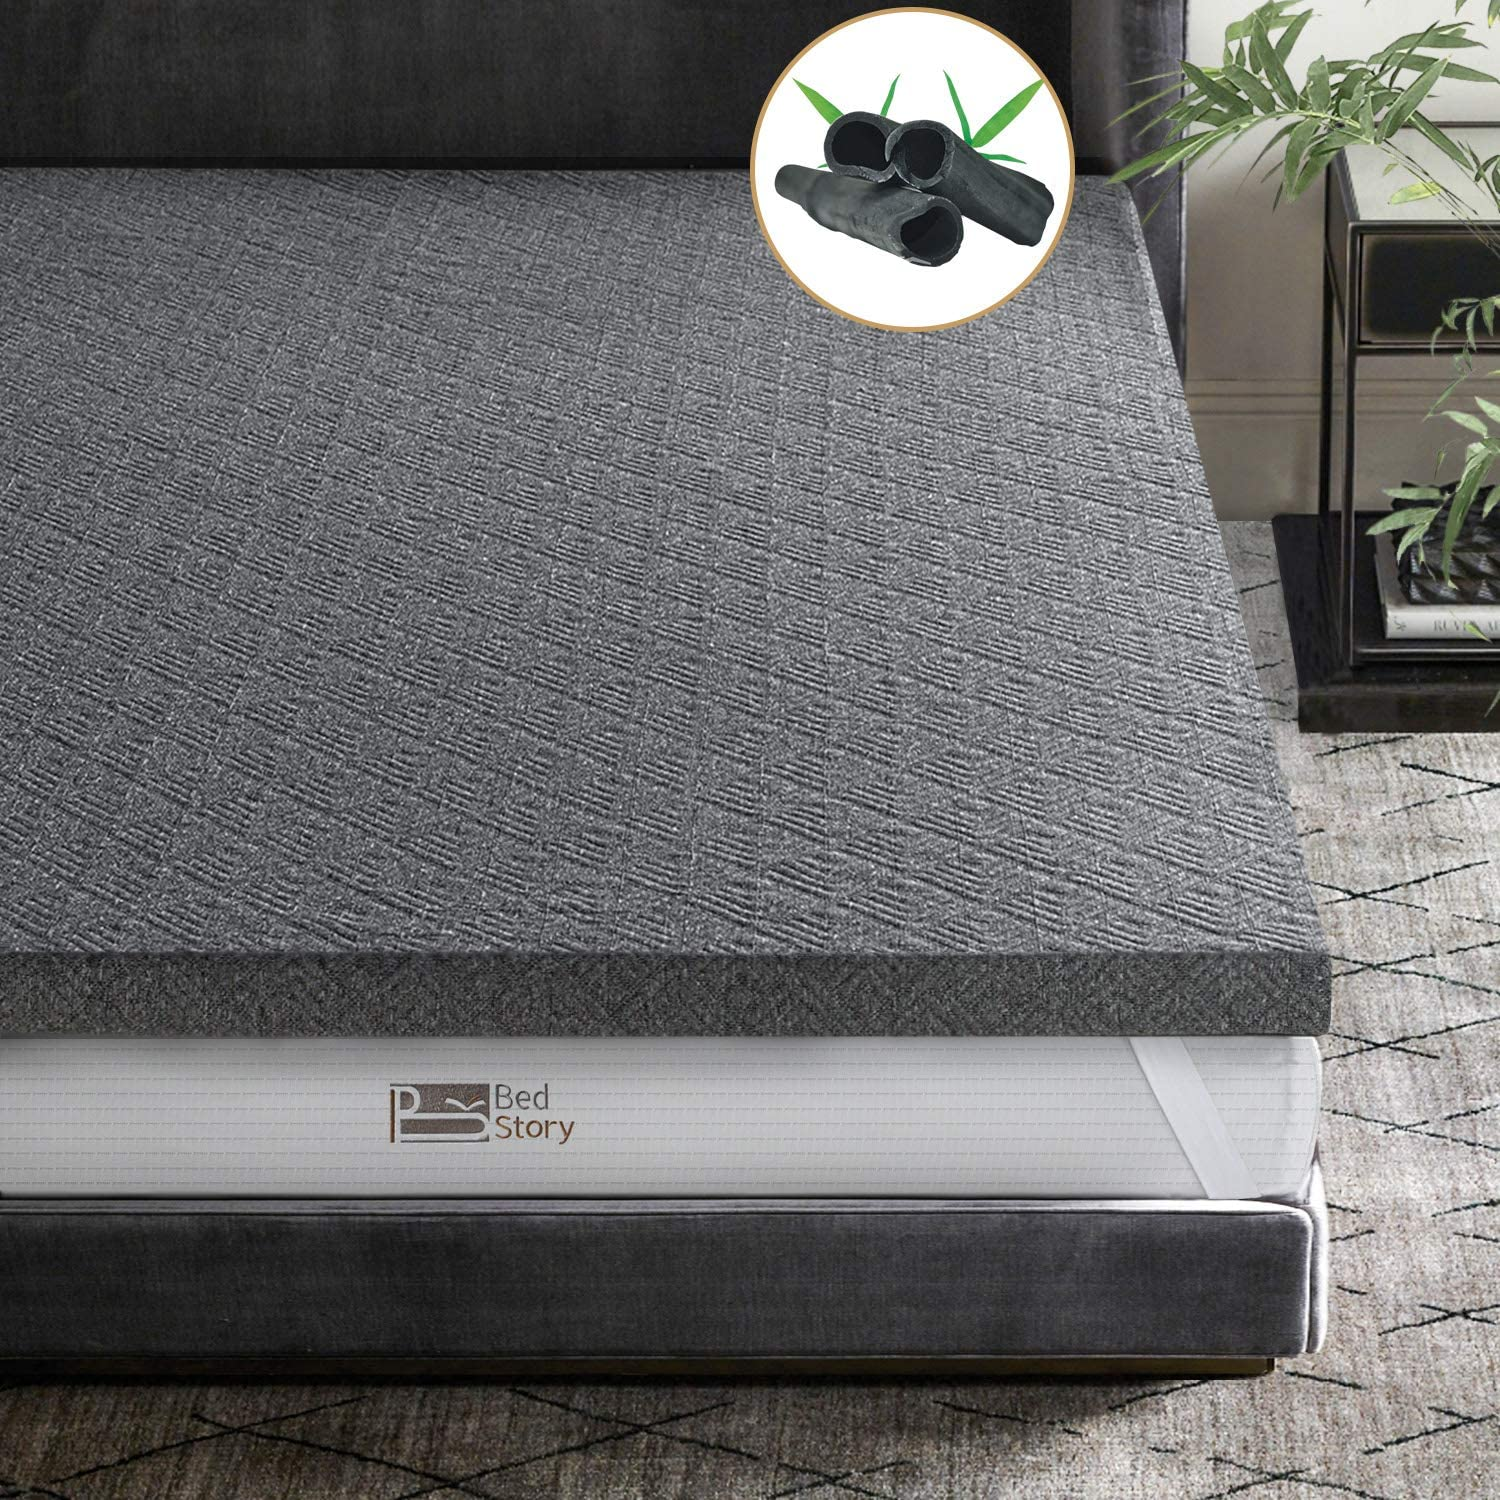 BedStory 2 Inch Memory Foam Mattress Topper Queen Size, Bamboo Charcoal Infused Bed Toppers, Foam Mattress Pad with Removable Washable Cover, CertiPUR-US Certified High-Density Memory Foam